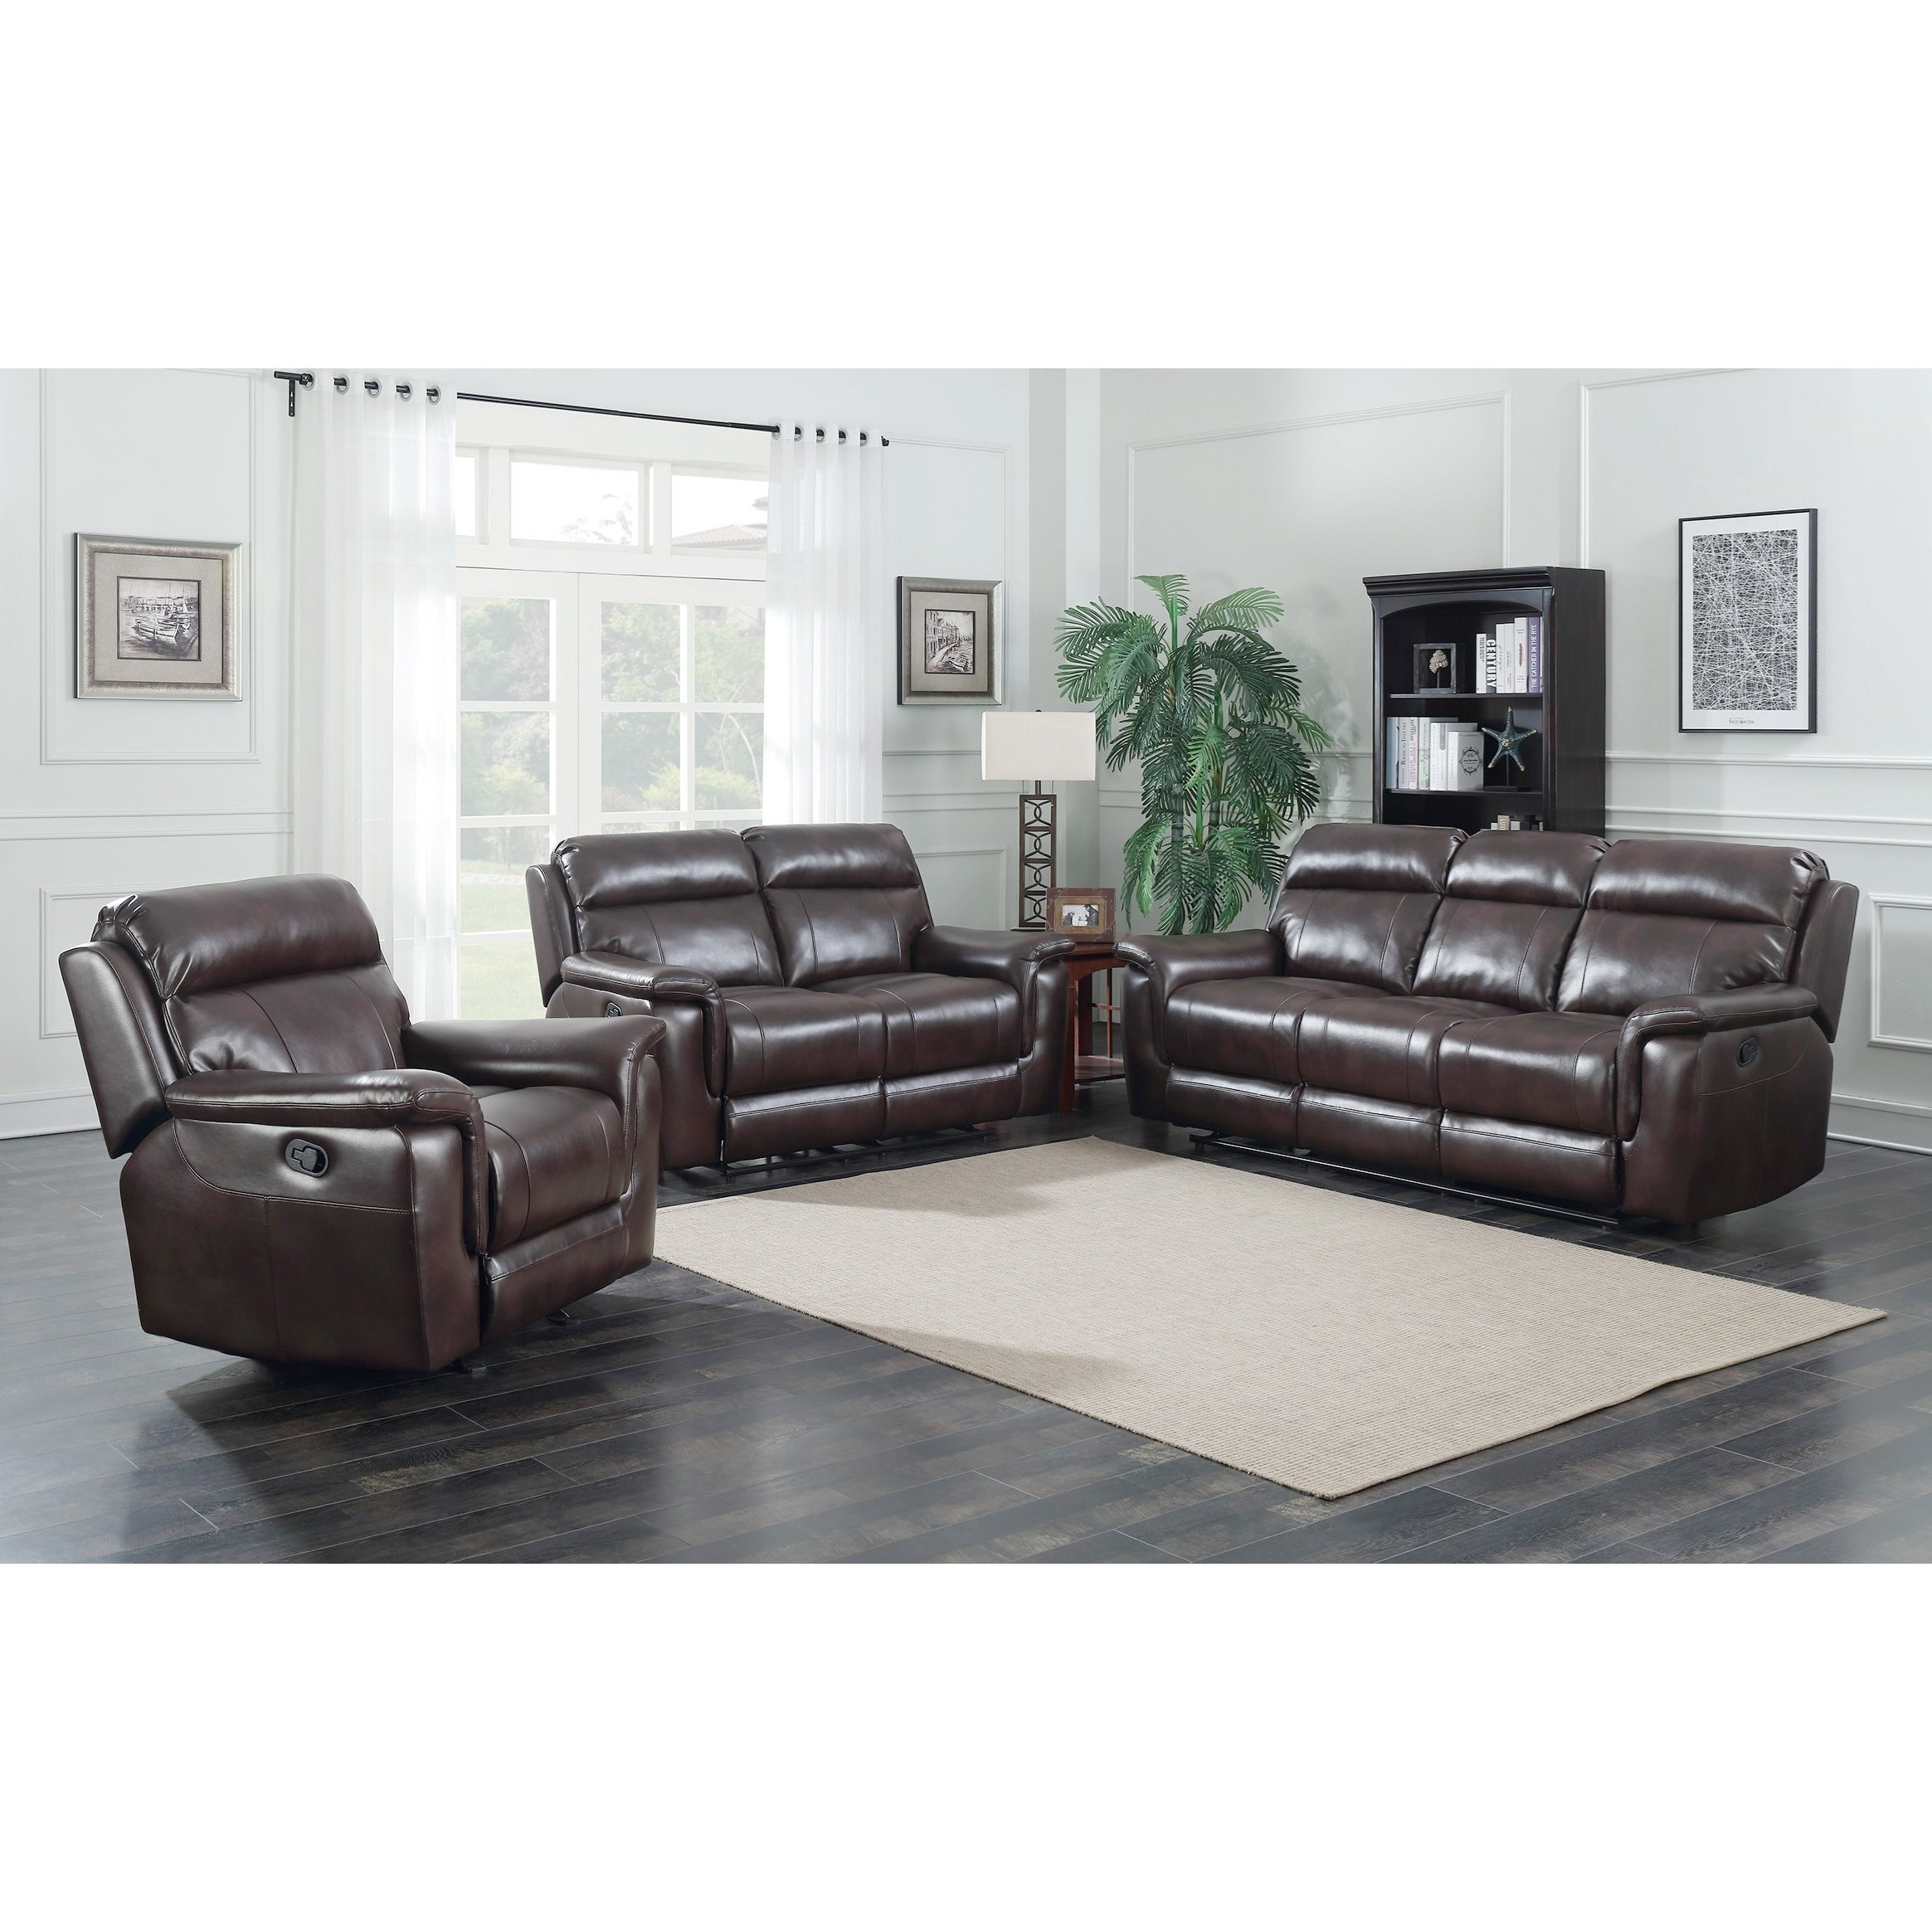 incredible Darvin Furniture Prices Part - 7: Steve Silver DakotaReclining Living Room Group ...